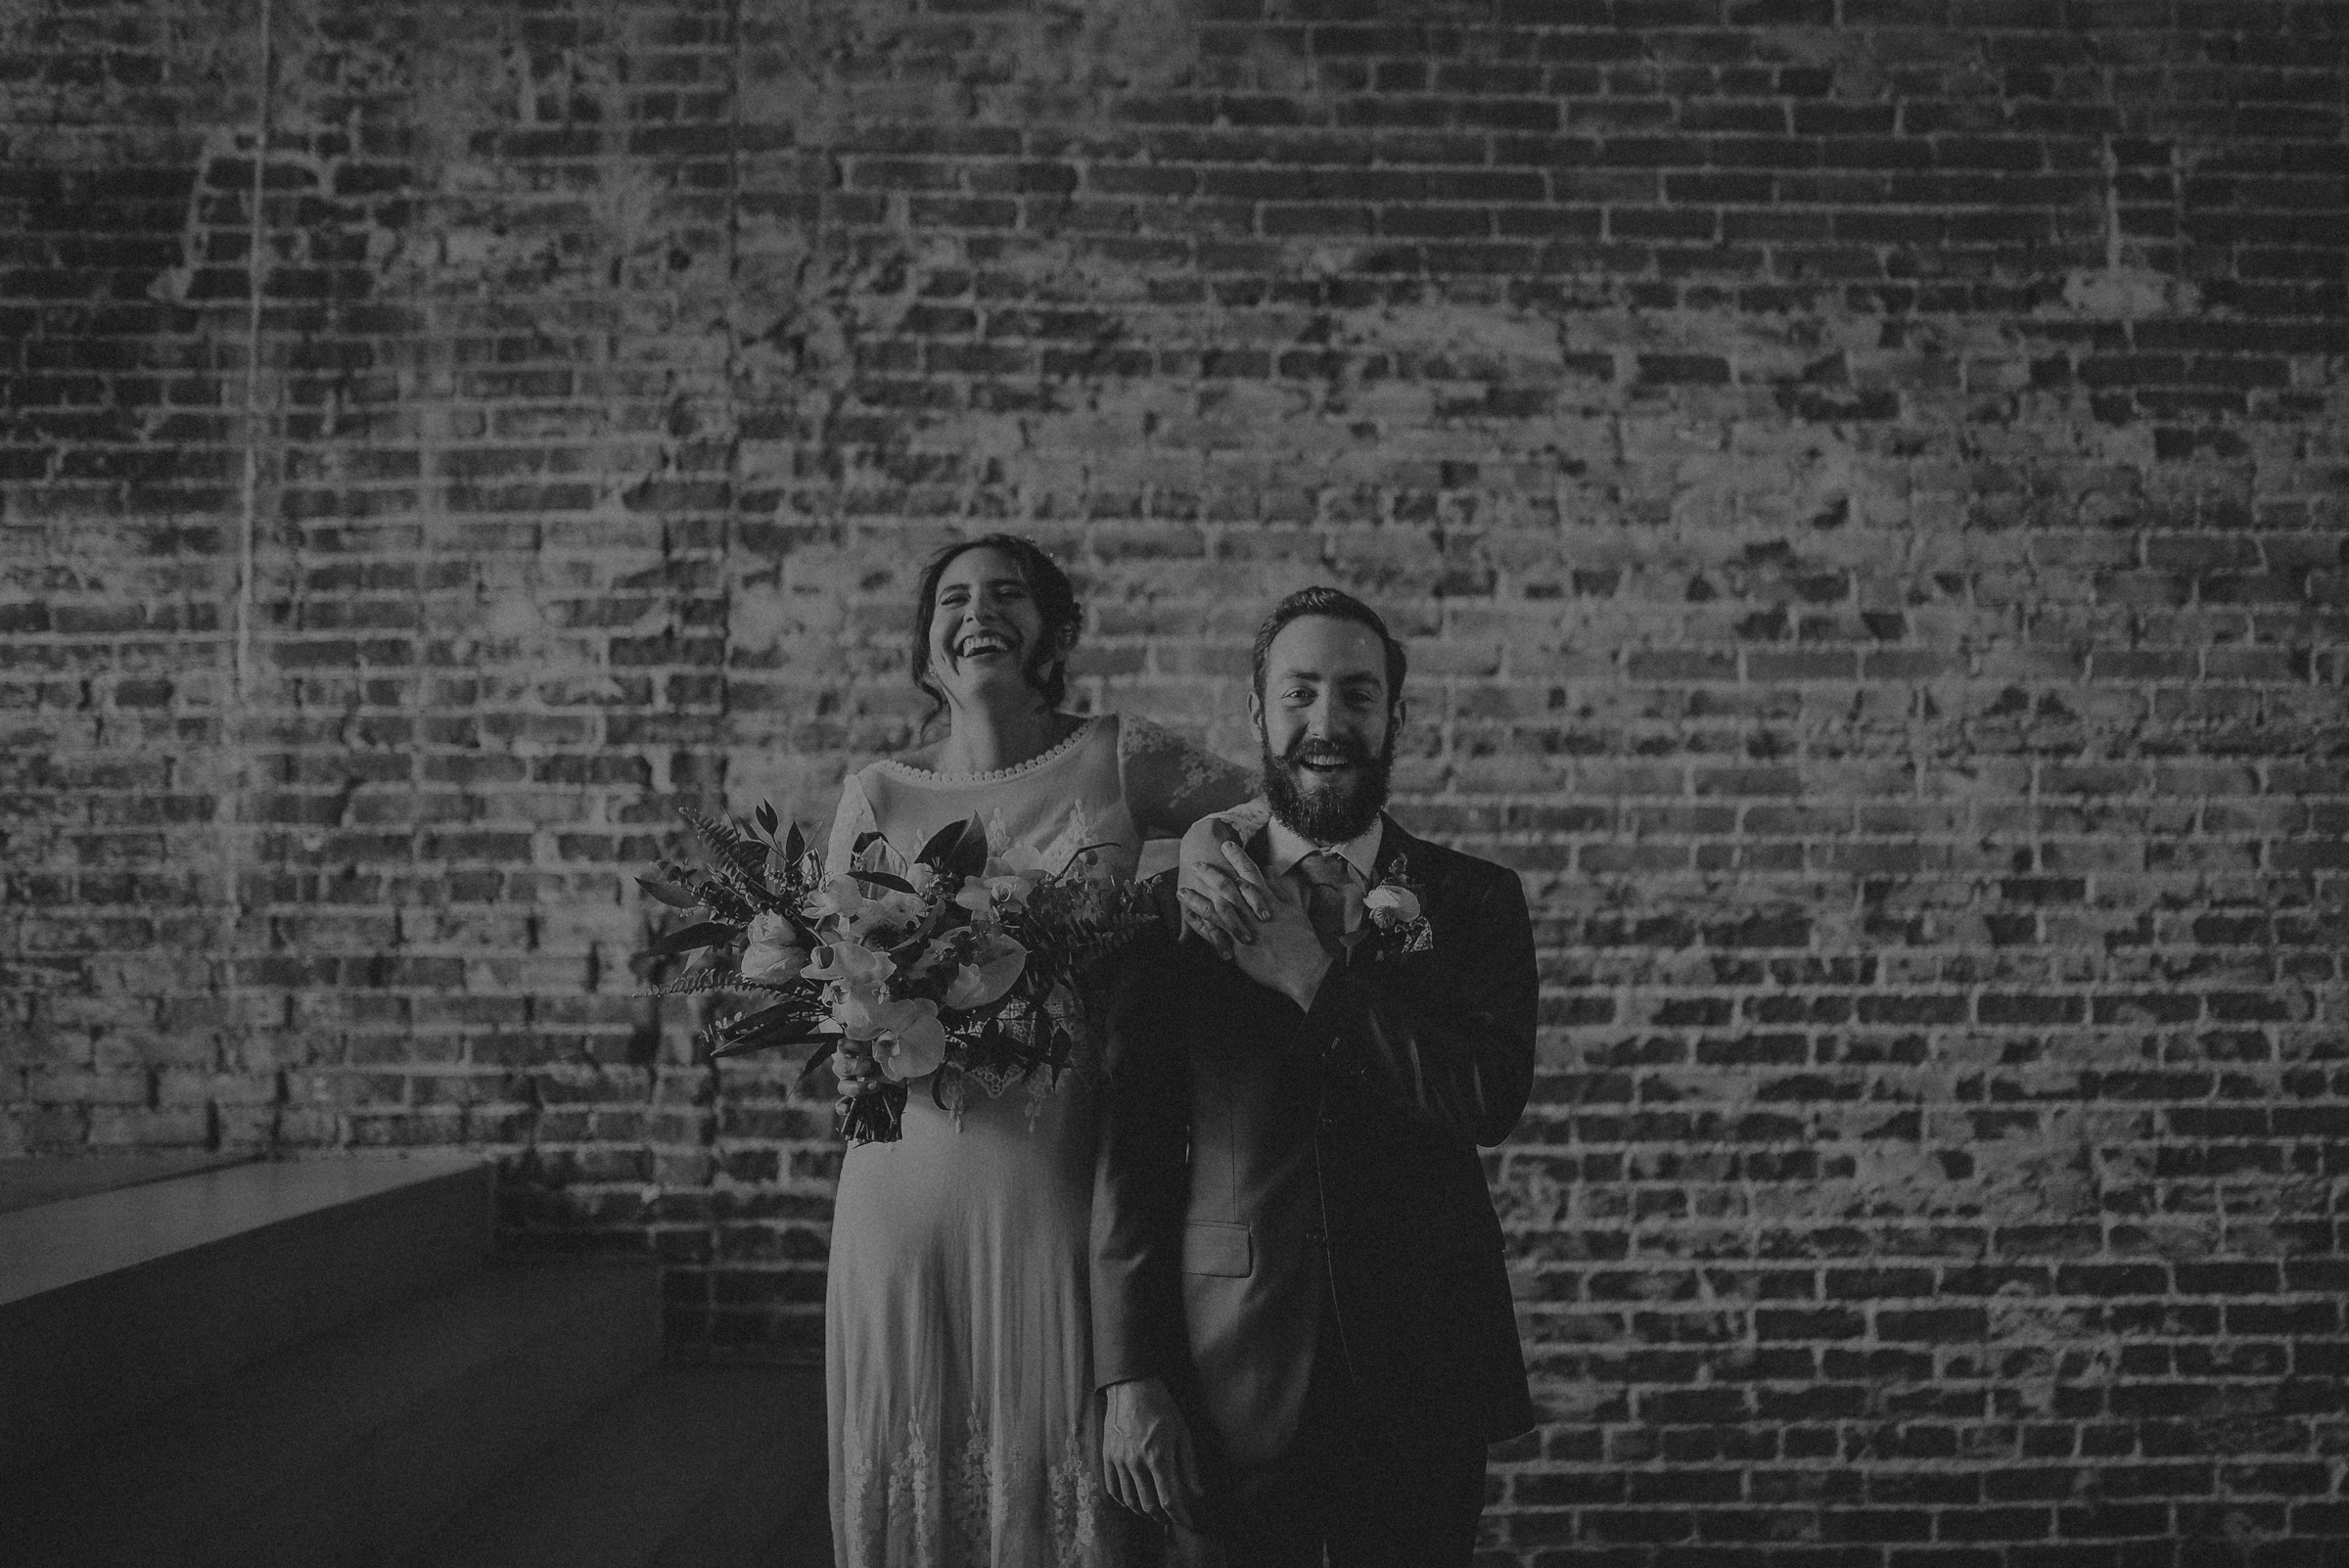 Isaiah + Taylor Photography - The Unique Space Wedding, Los Angeles Wedding Photography 078.jpg